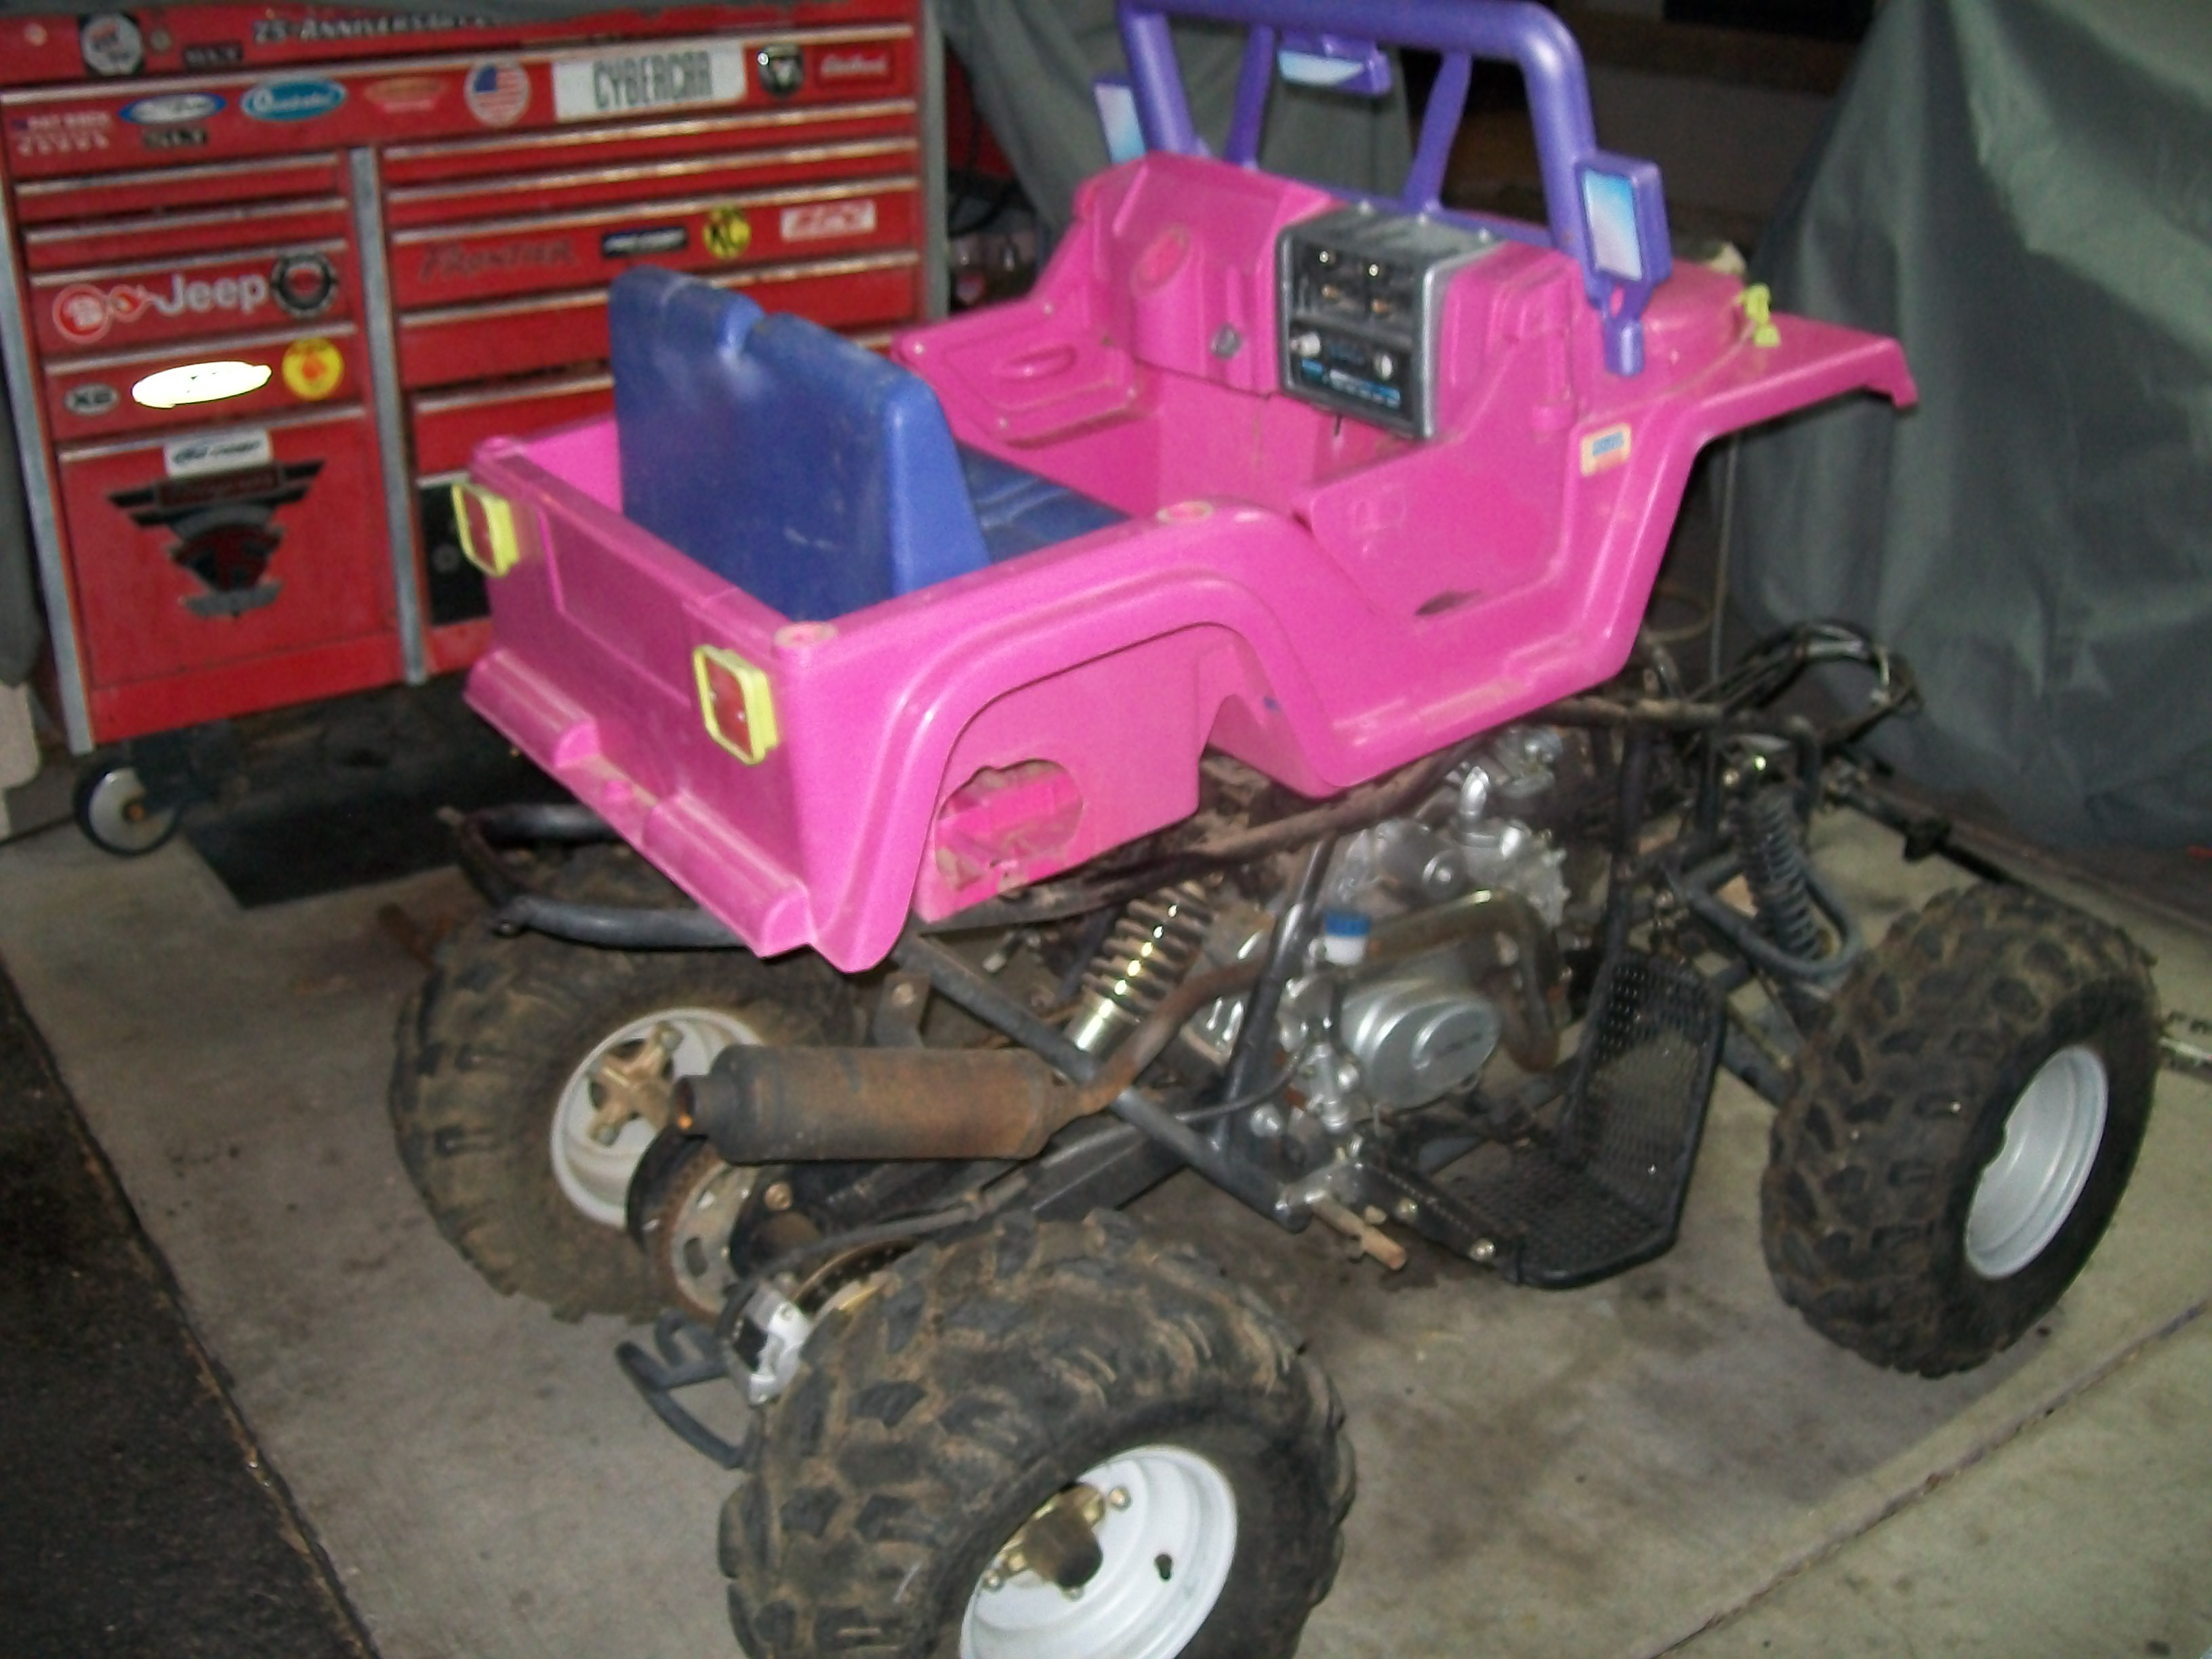 Photo 12 of 15, Gas Power Wheels Conversion